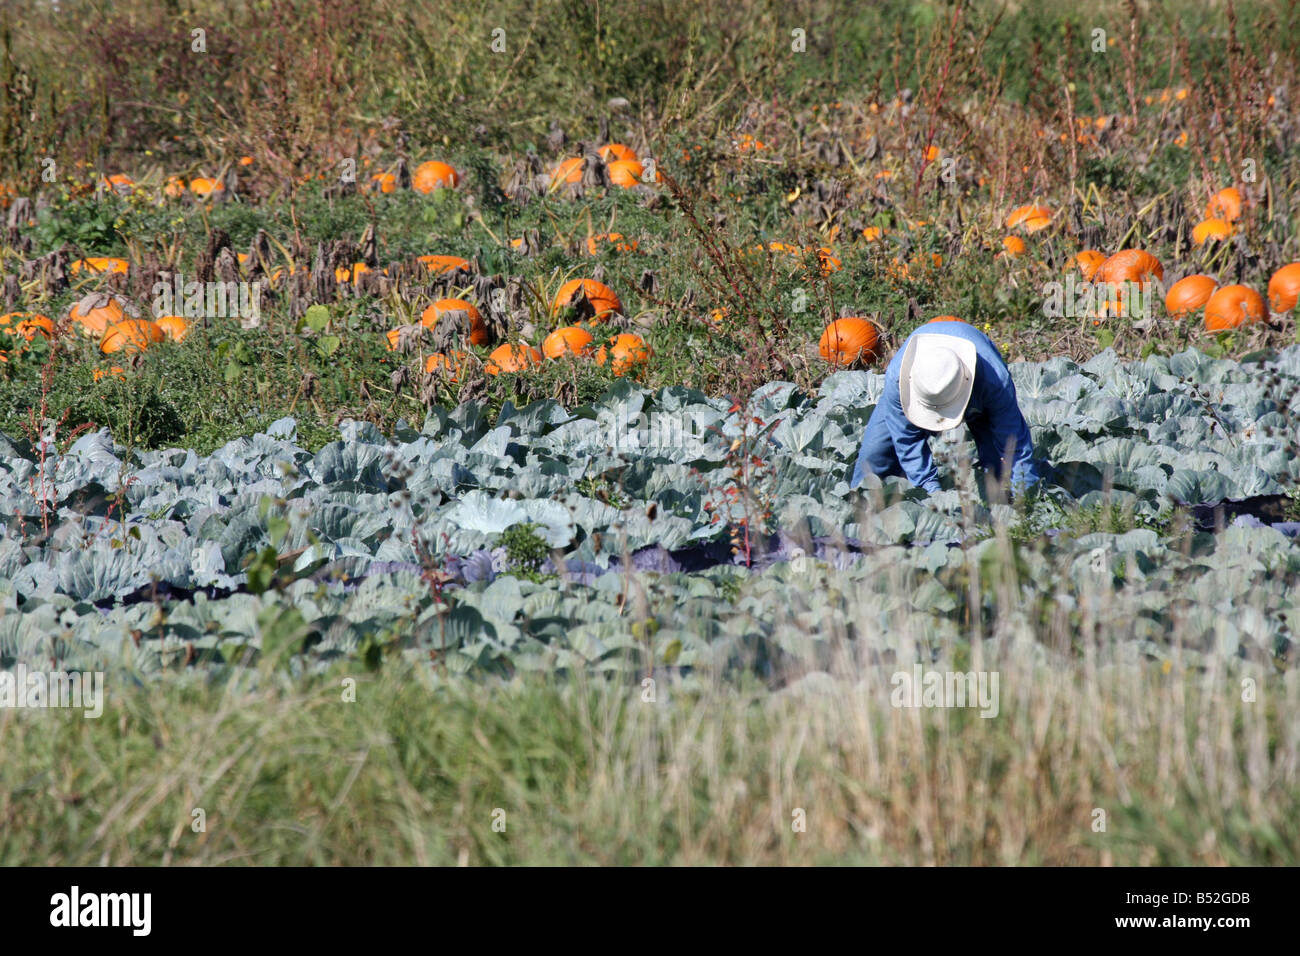 A migrant worker picking cabage during fall harvest time in Wisconsin - Stock Image